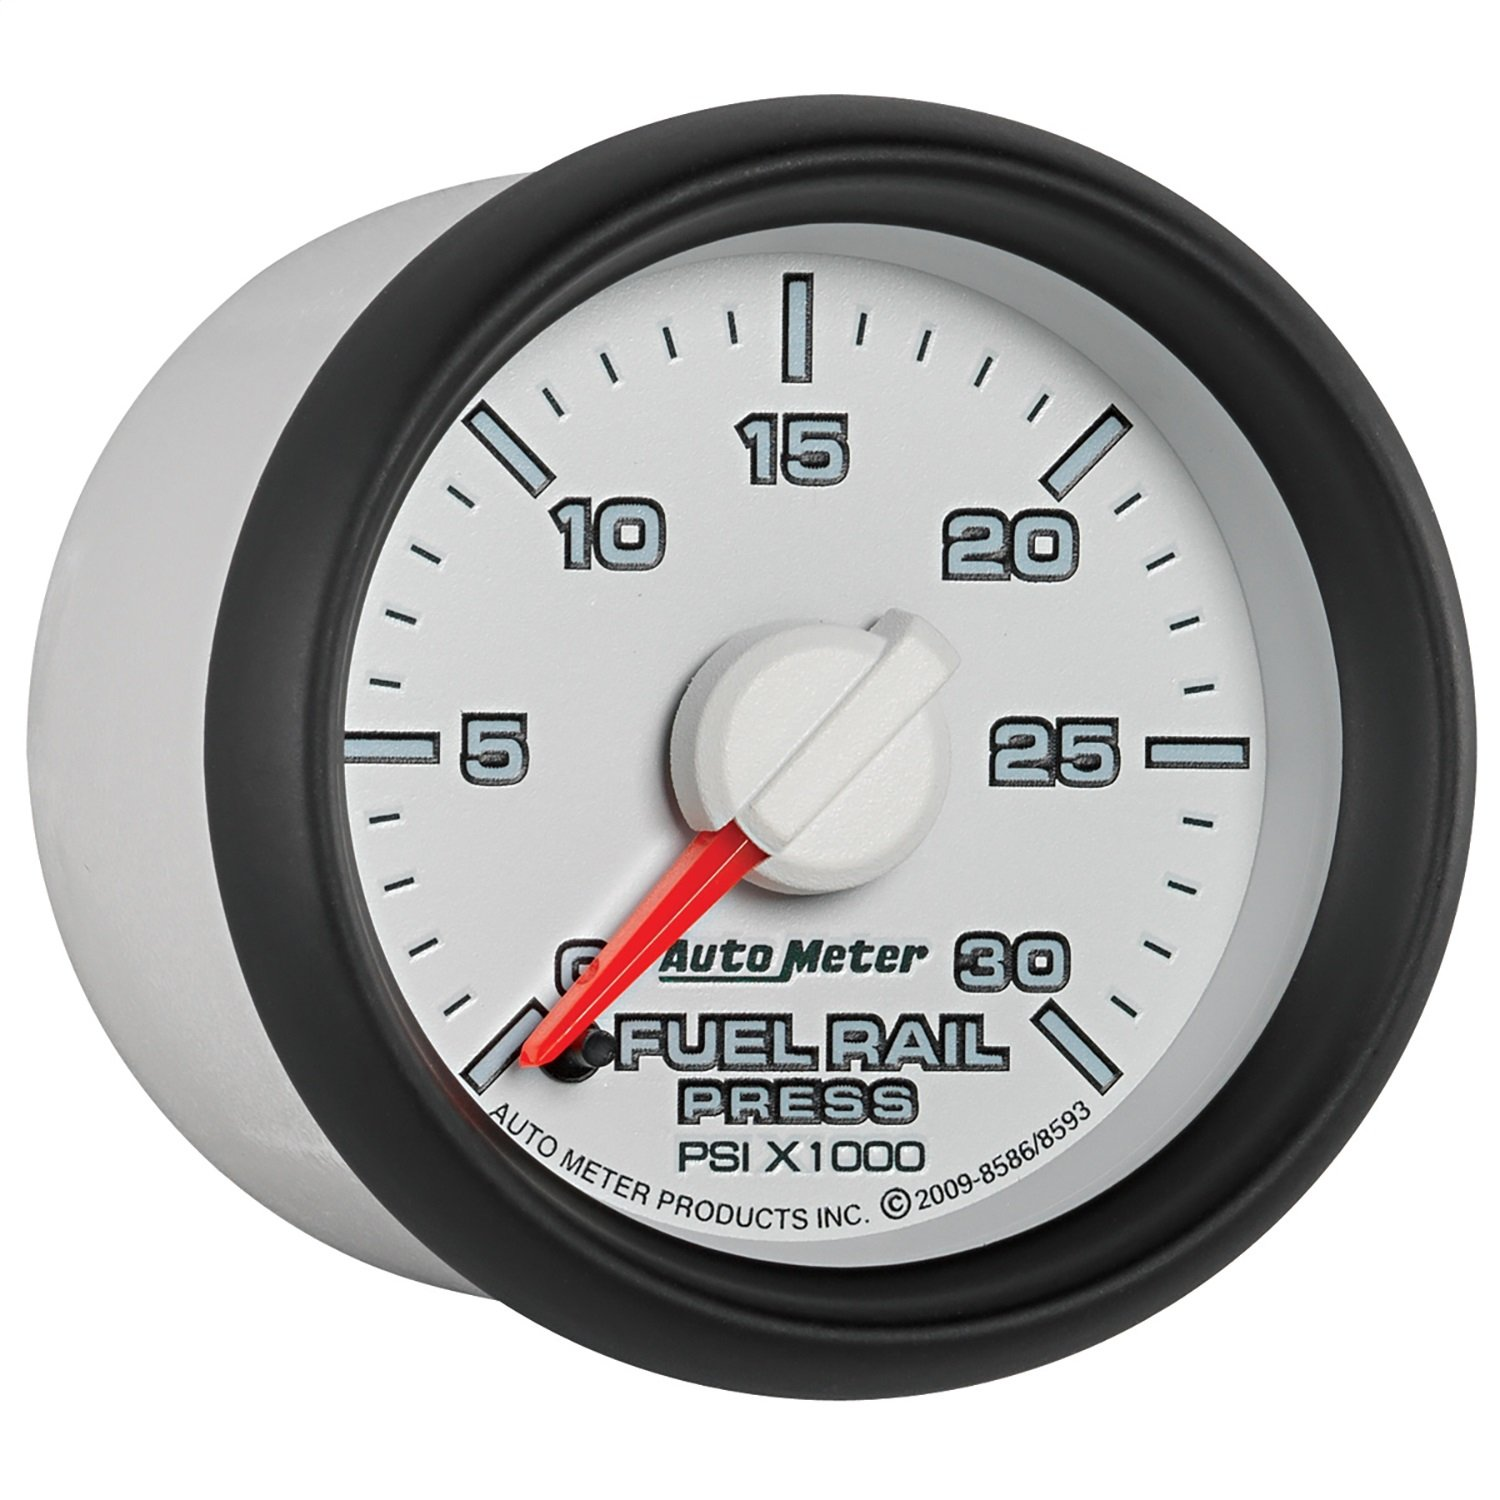 Auto Meter 8586 2-1/16'' 0-30000 PSI Fuel Rail Pressure Gauge for 2003-2007.5 Dodge Cummins 5.9L GM Duramax LB7 and LLY by Auto Meter